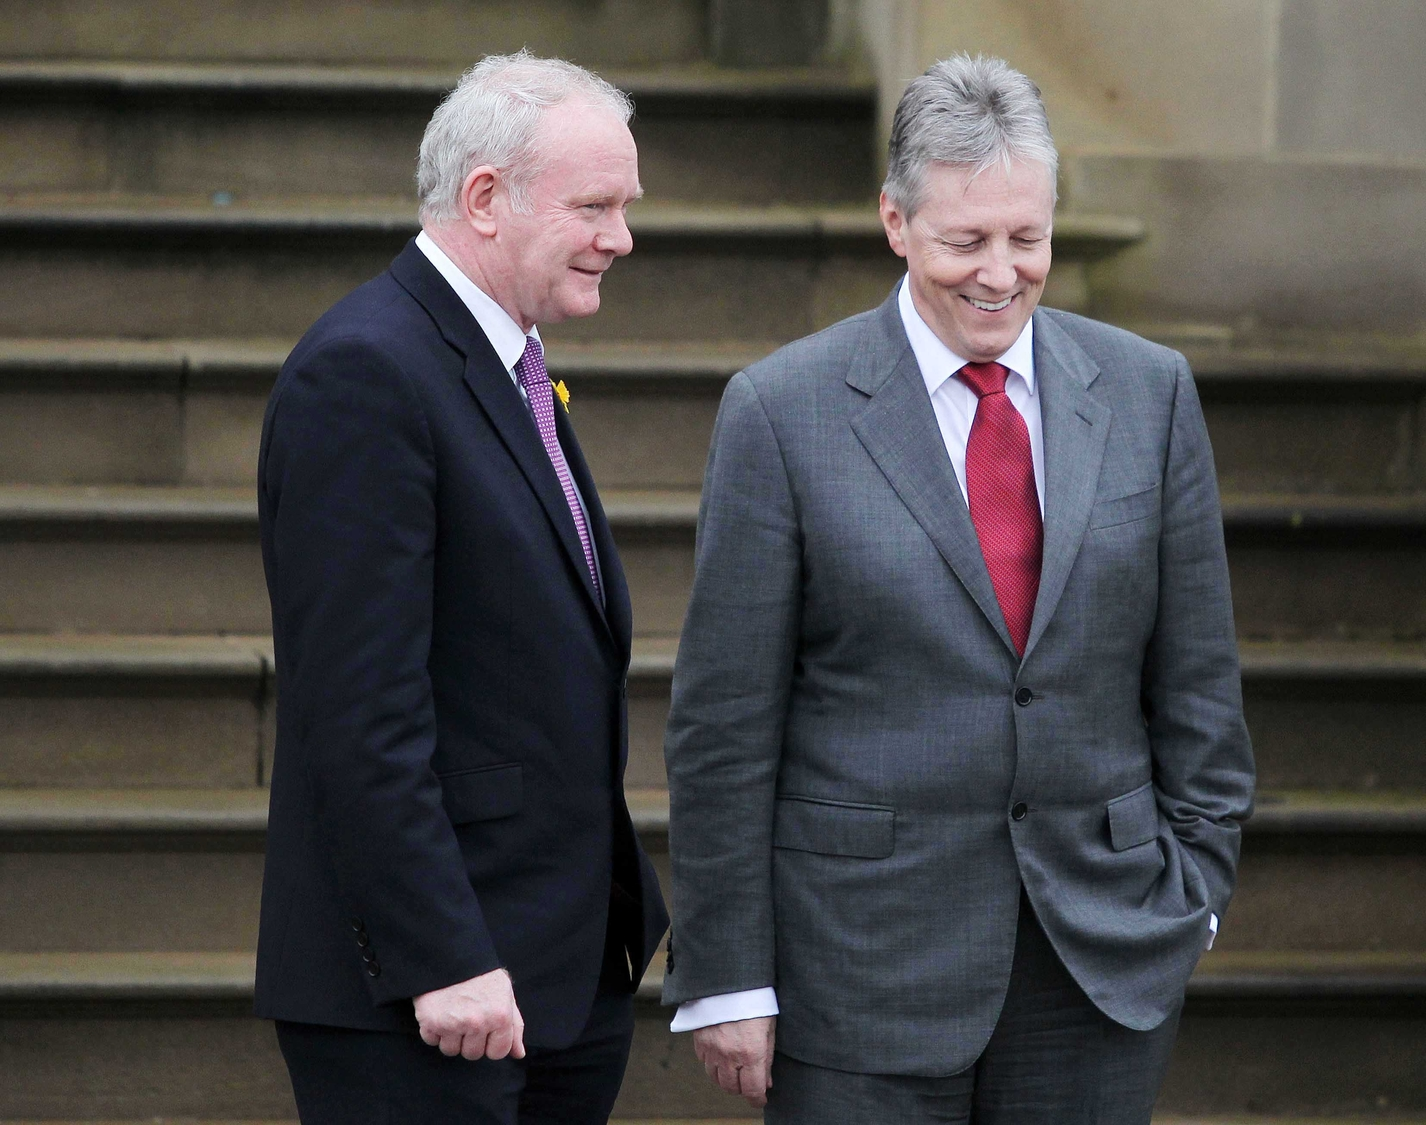 Martin McGuinness and Peter Robinson in happier times